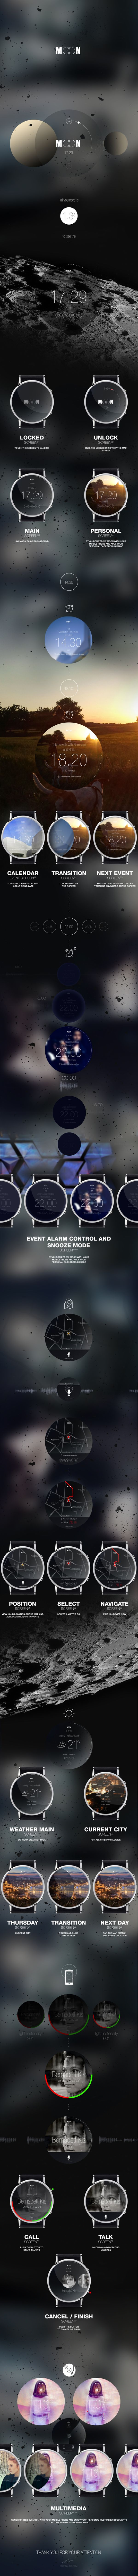 MOON smart watch project by Erős Balázs, via Behance